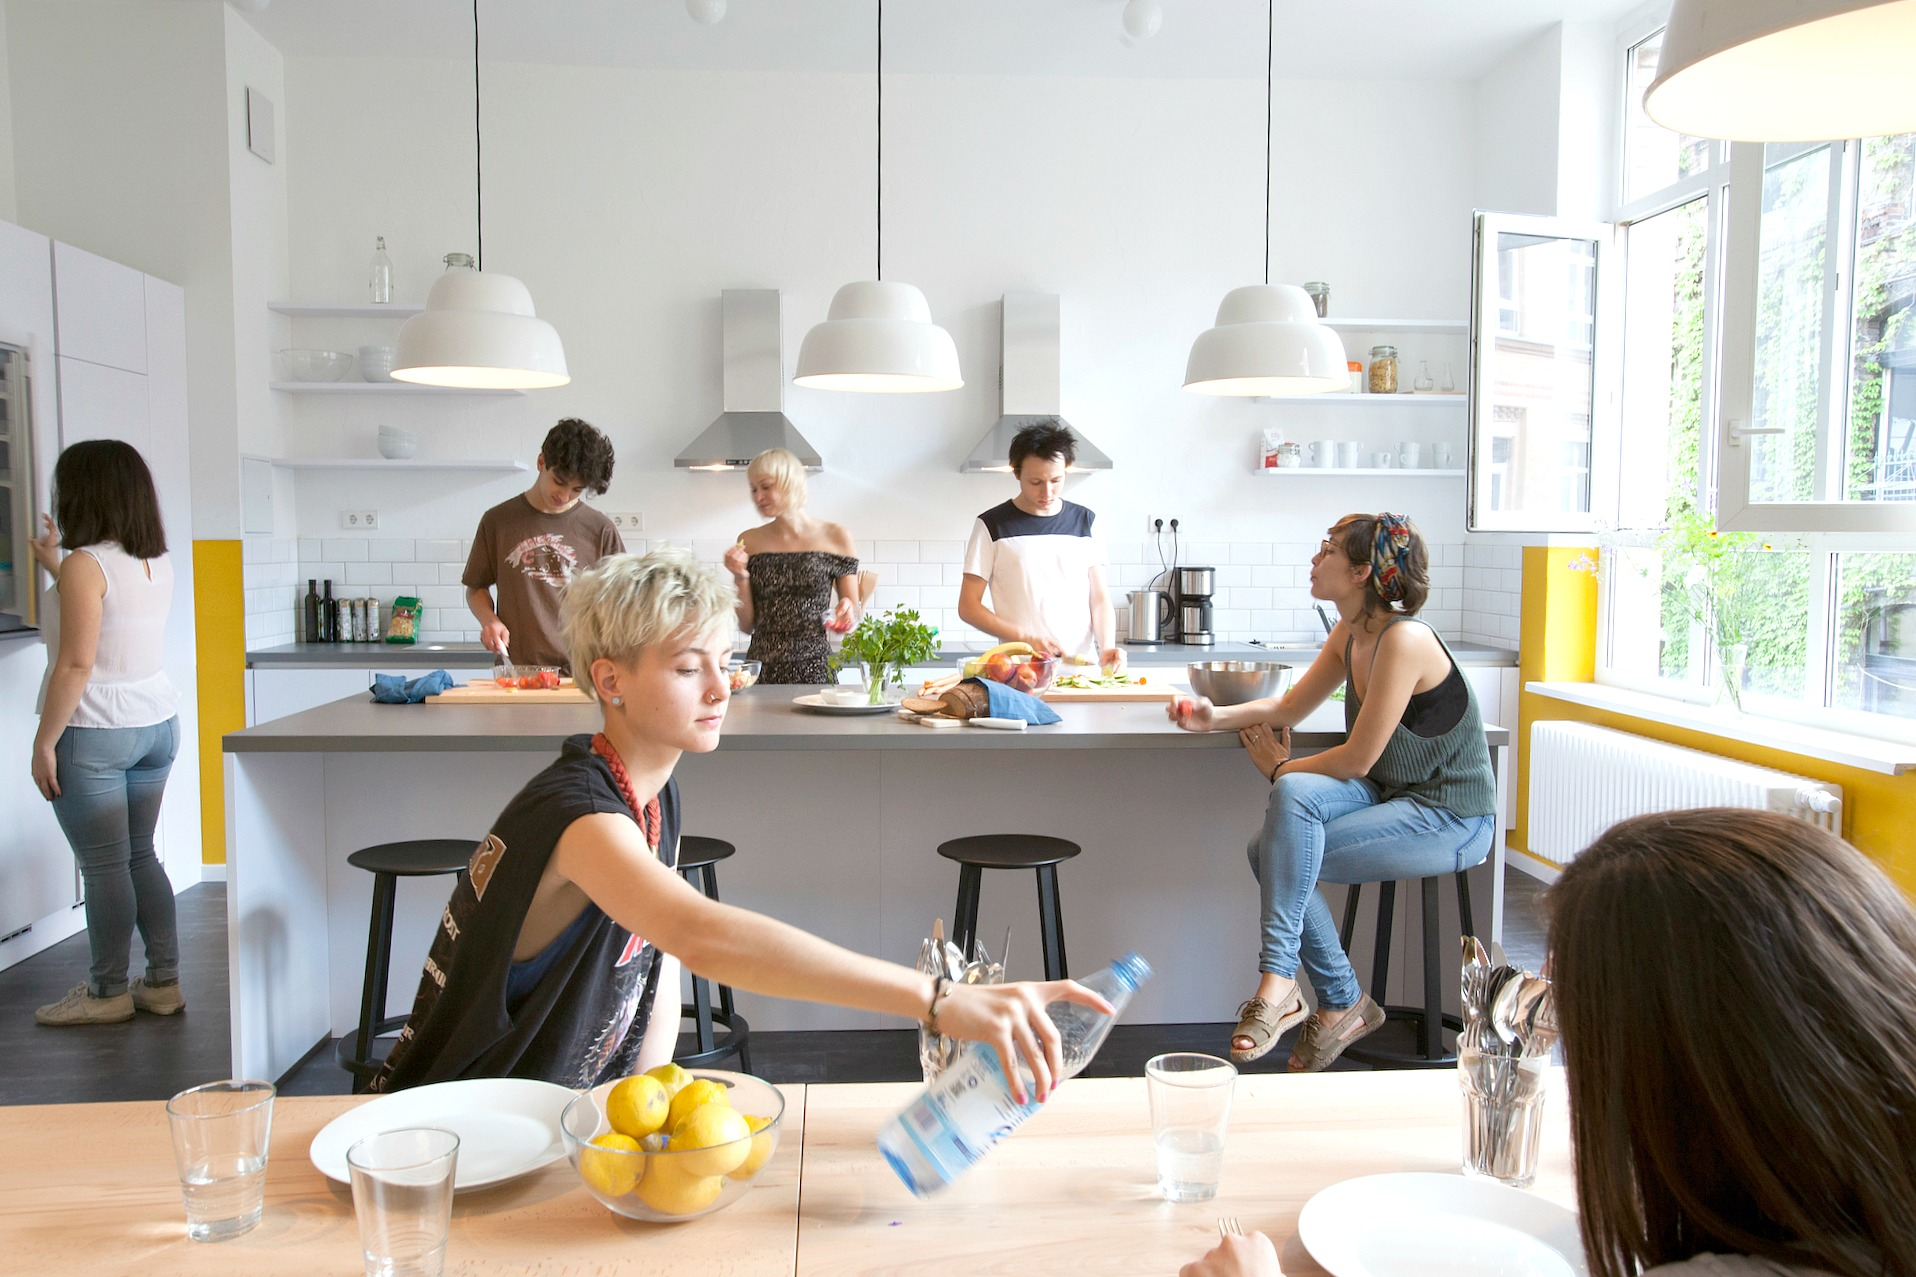 student housing abroad